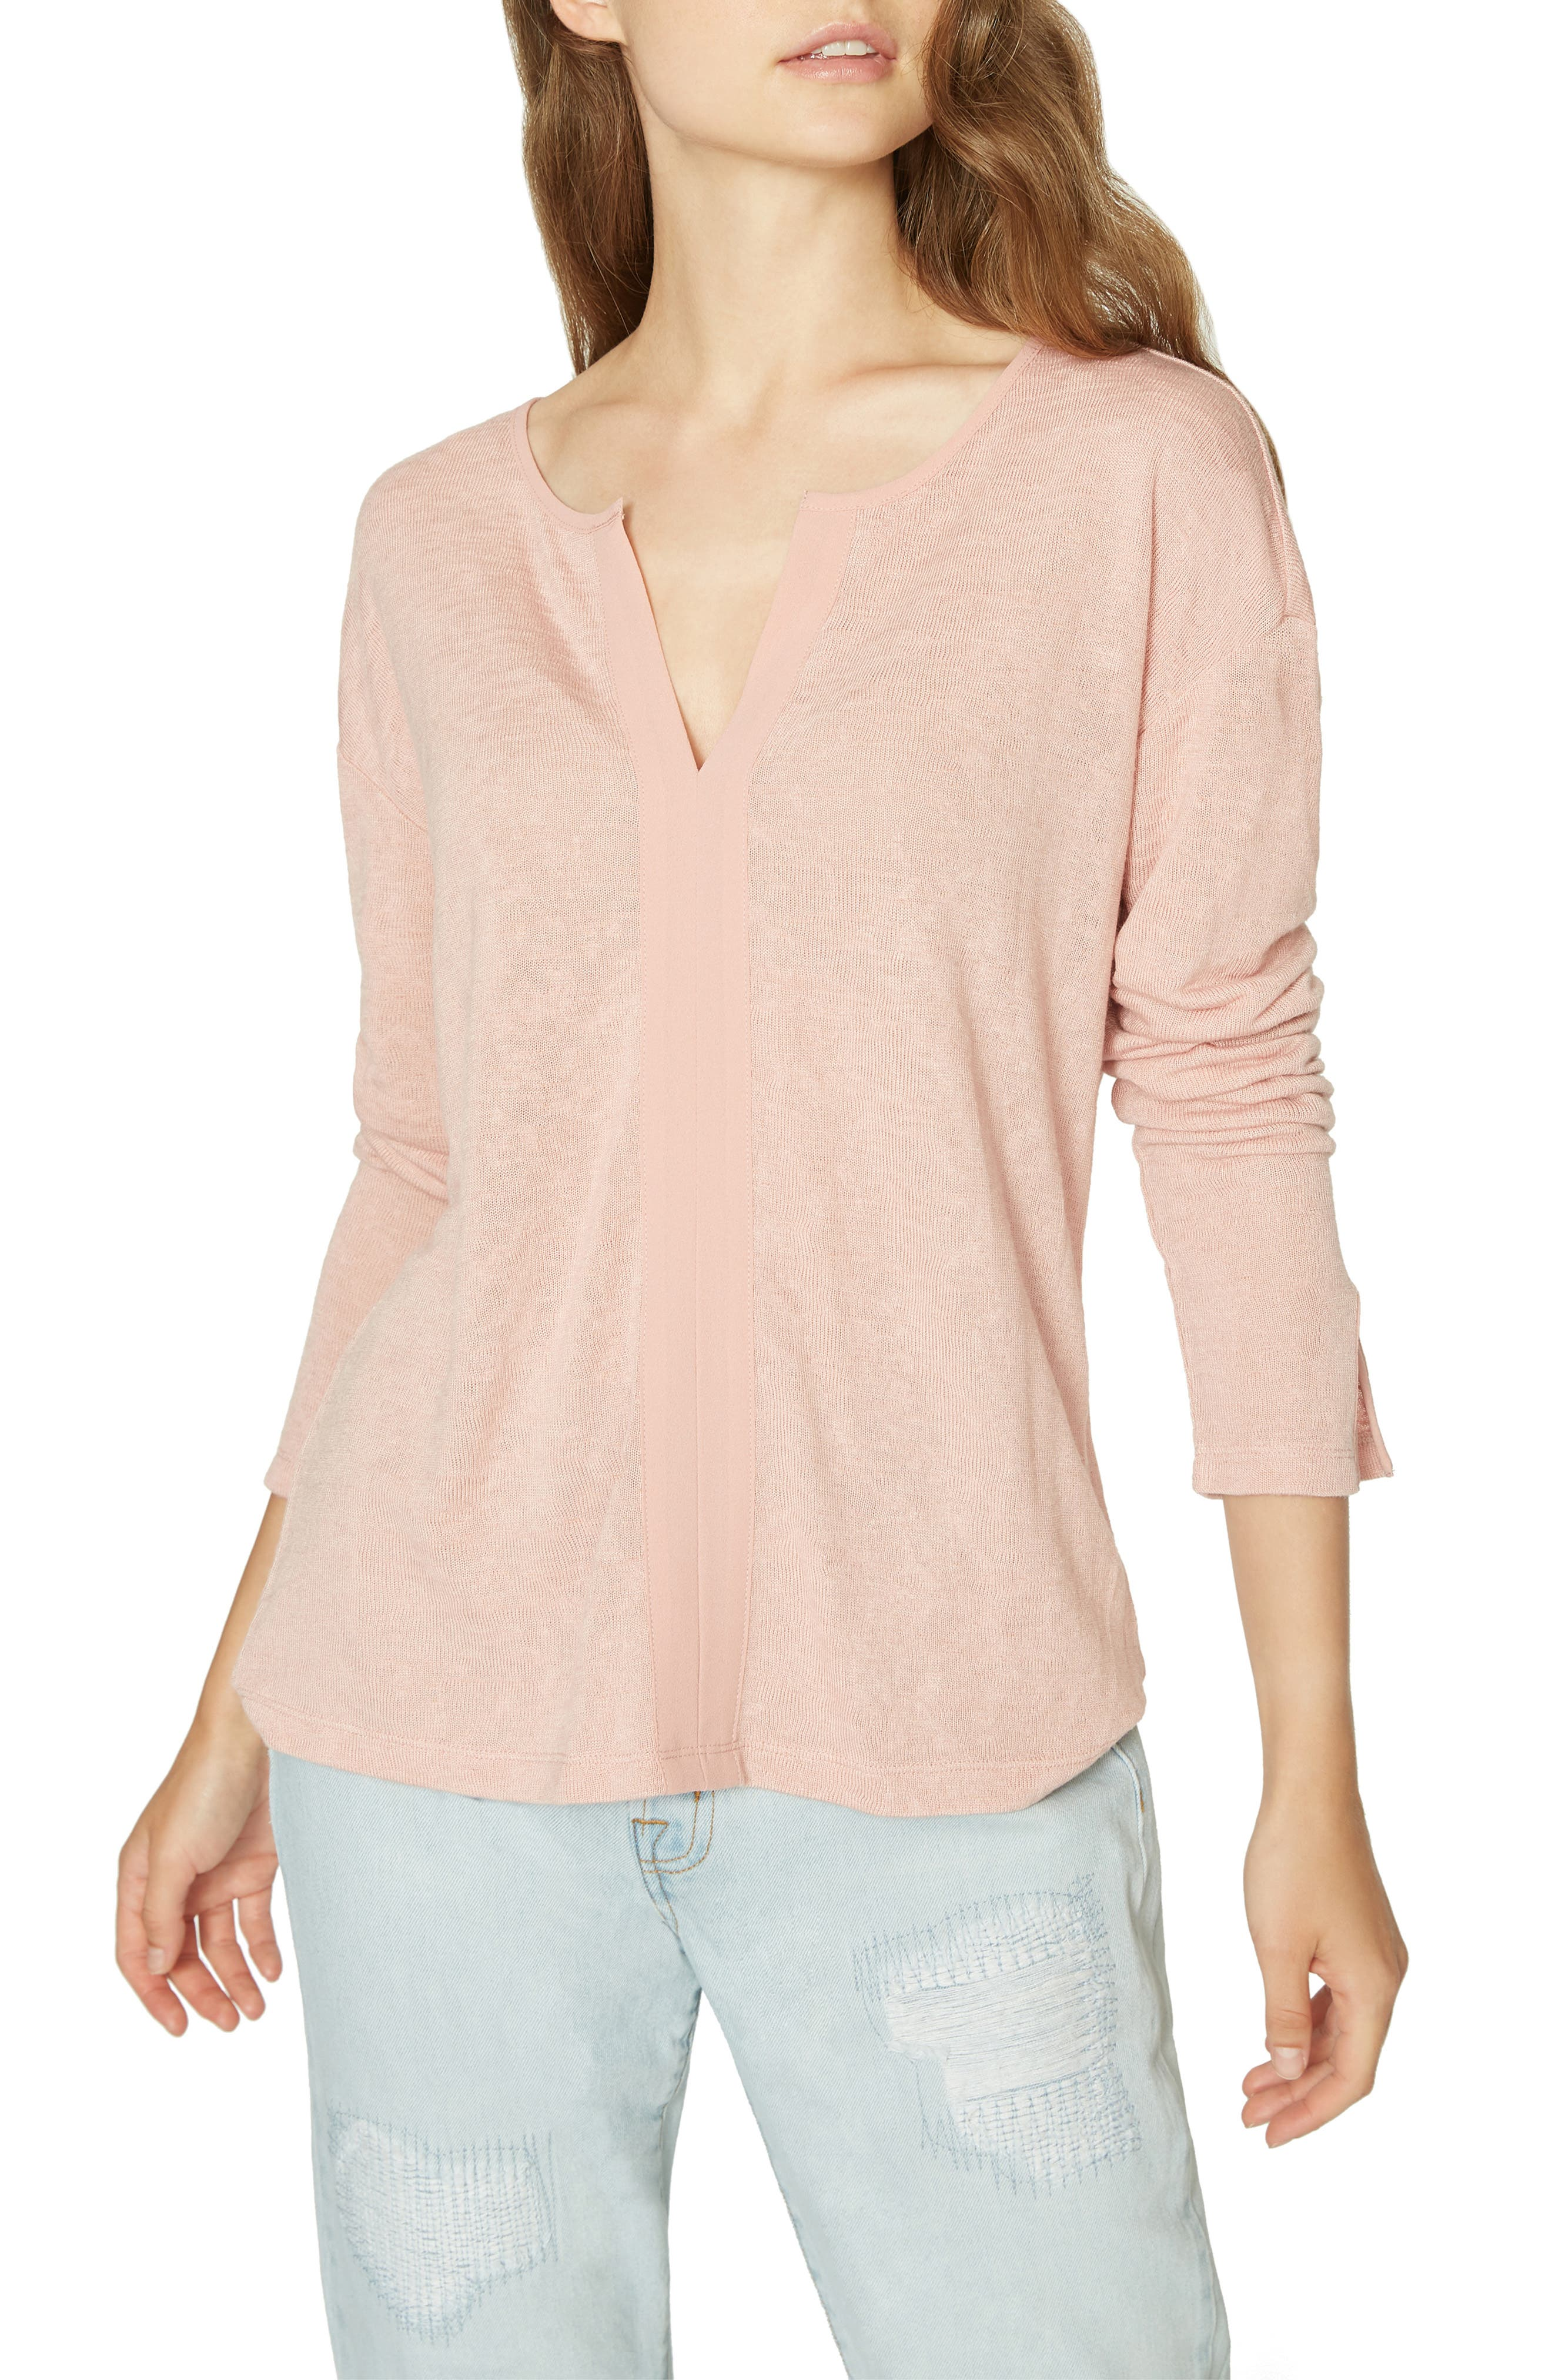 Sienna Mix Top,                         Main,                         color, PINK SCOTCH